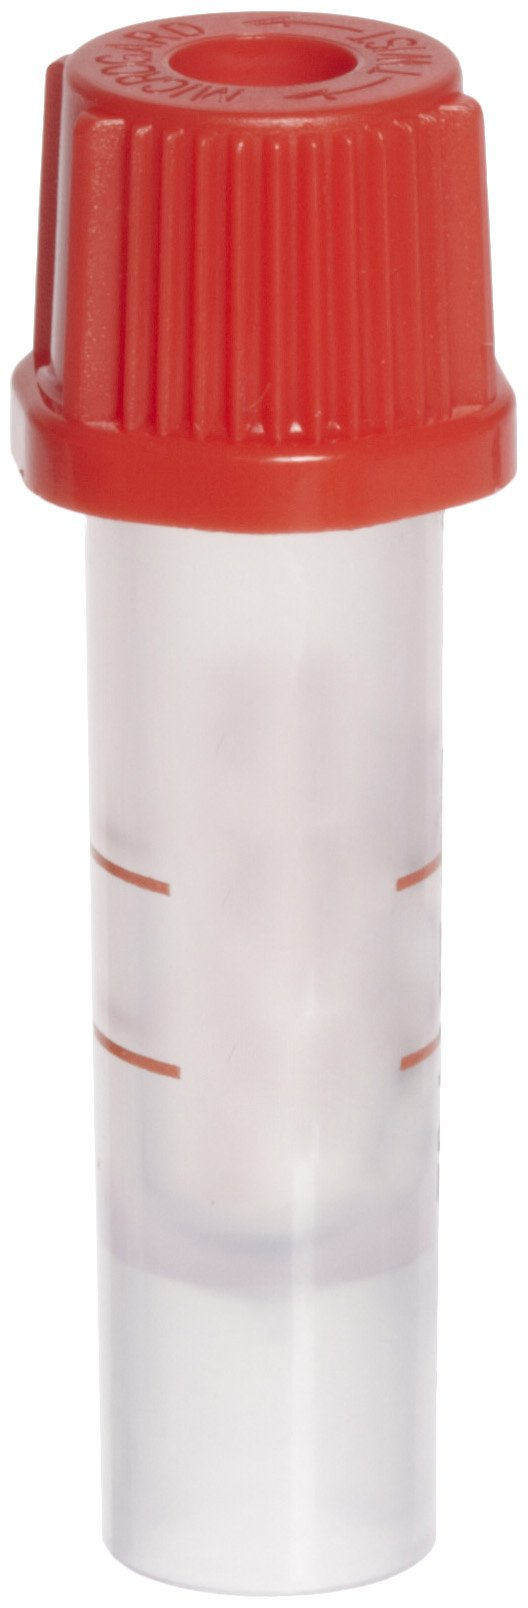 BD 365963 Plastic Capillary Blood Collection Microtainer Tube with Red Microgard Closure, 250-500 microliter Capacity, 8mm ID (Case of 200)